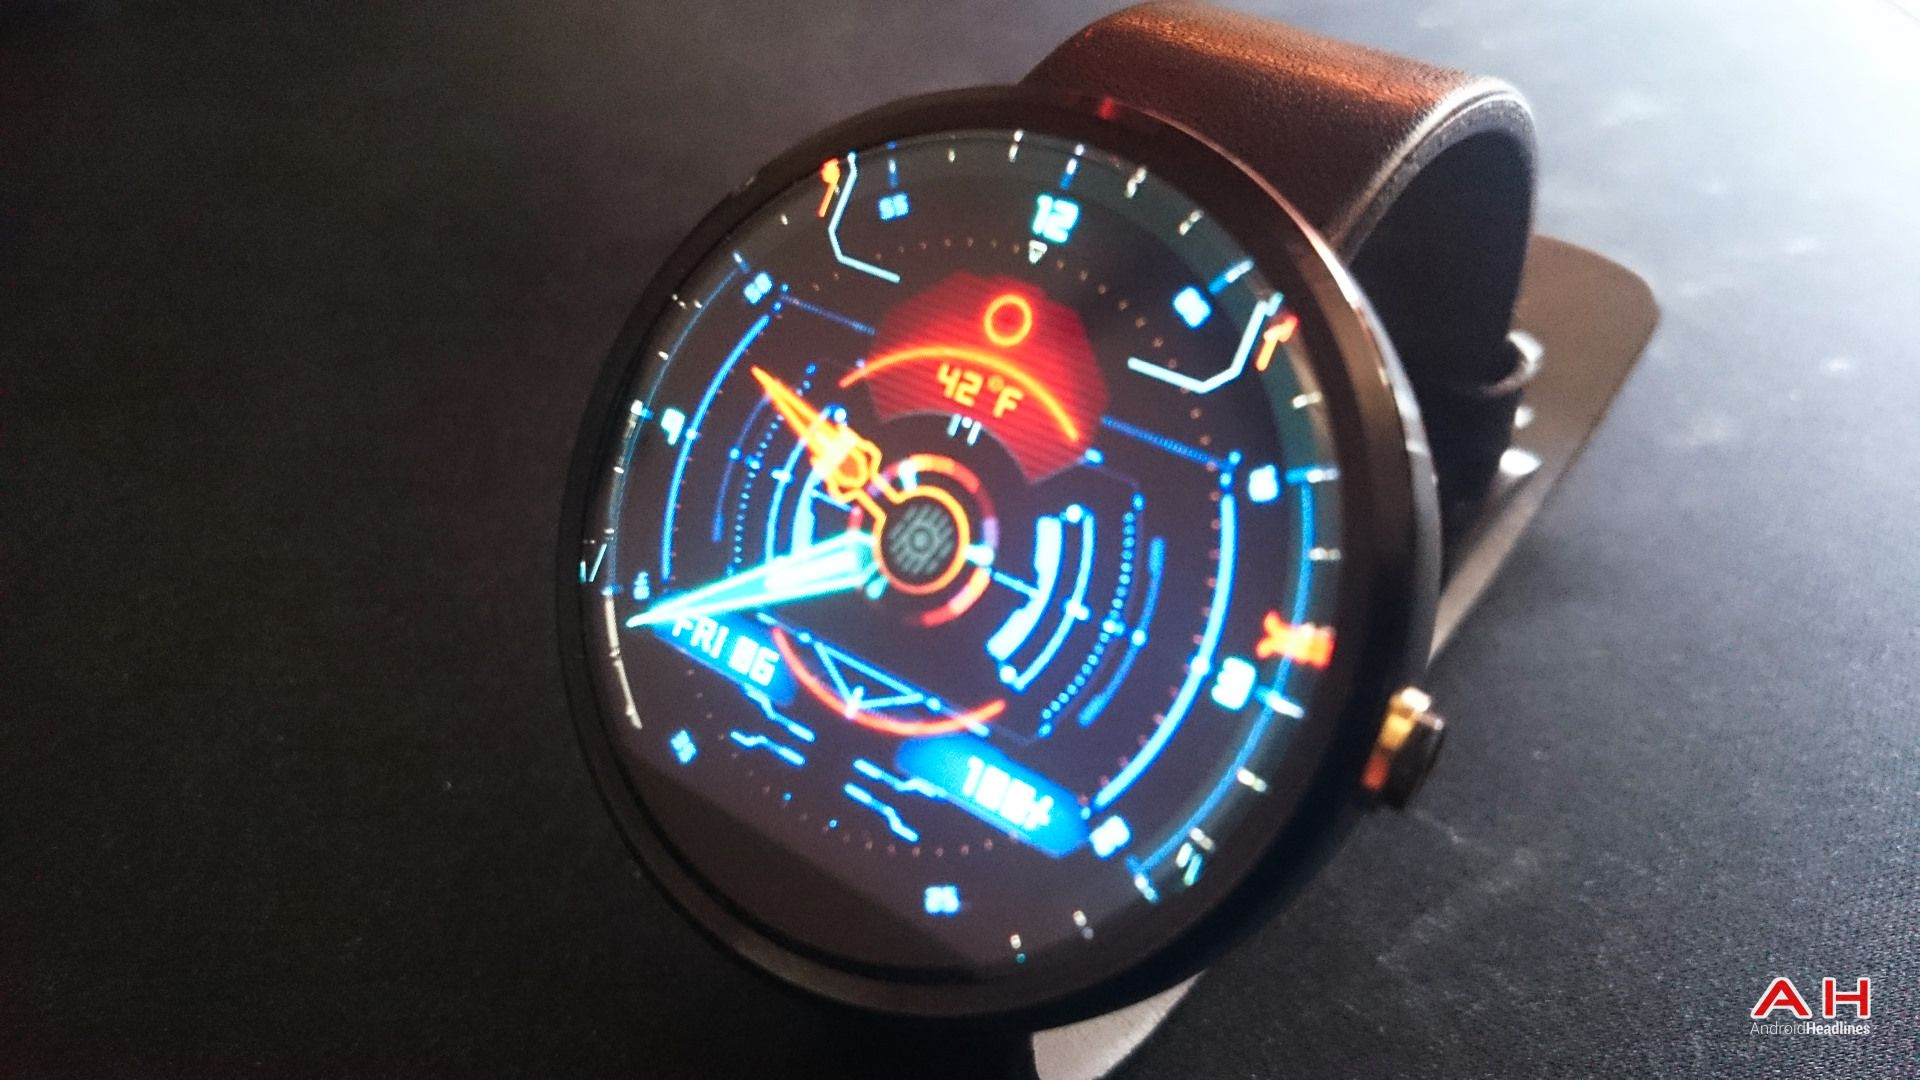 Android Wear Weekly Five Watch Faces for SciFi Fans